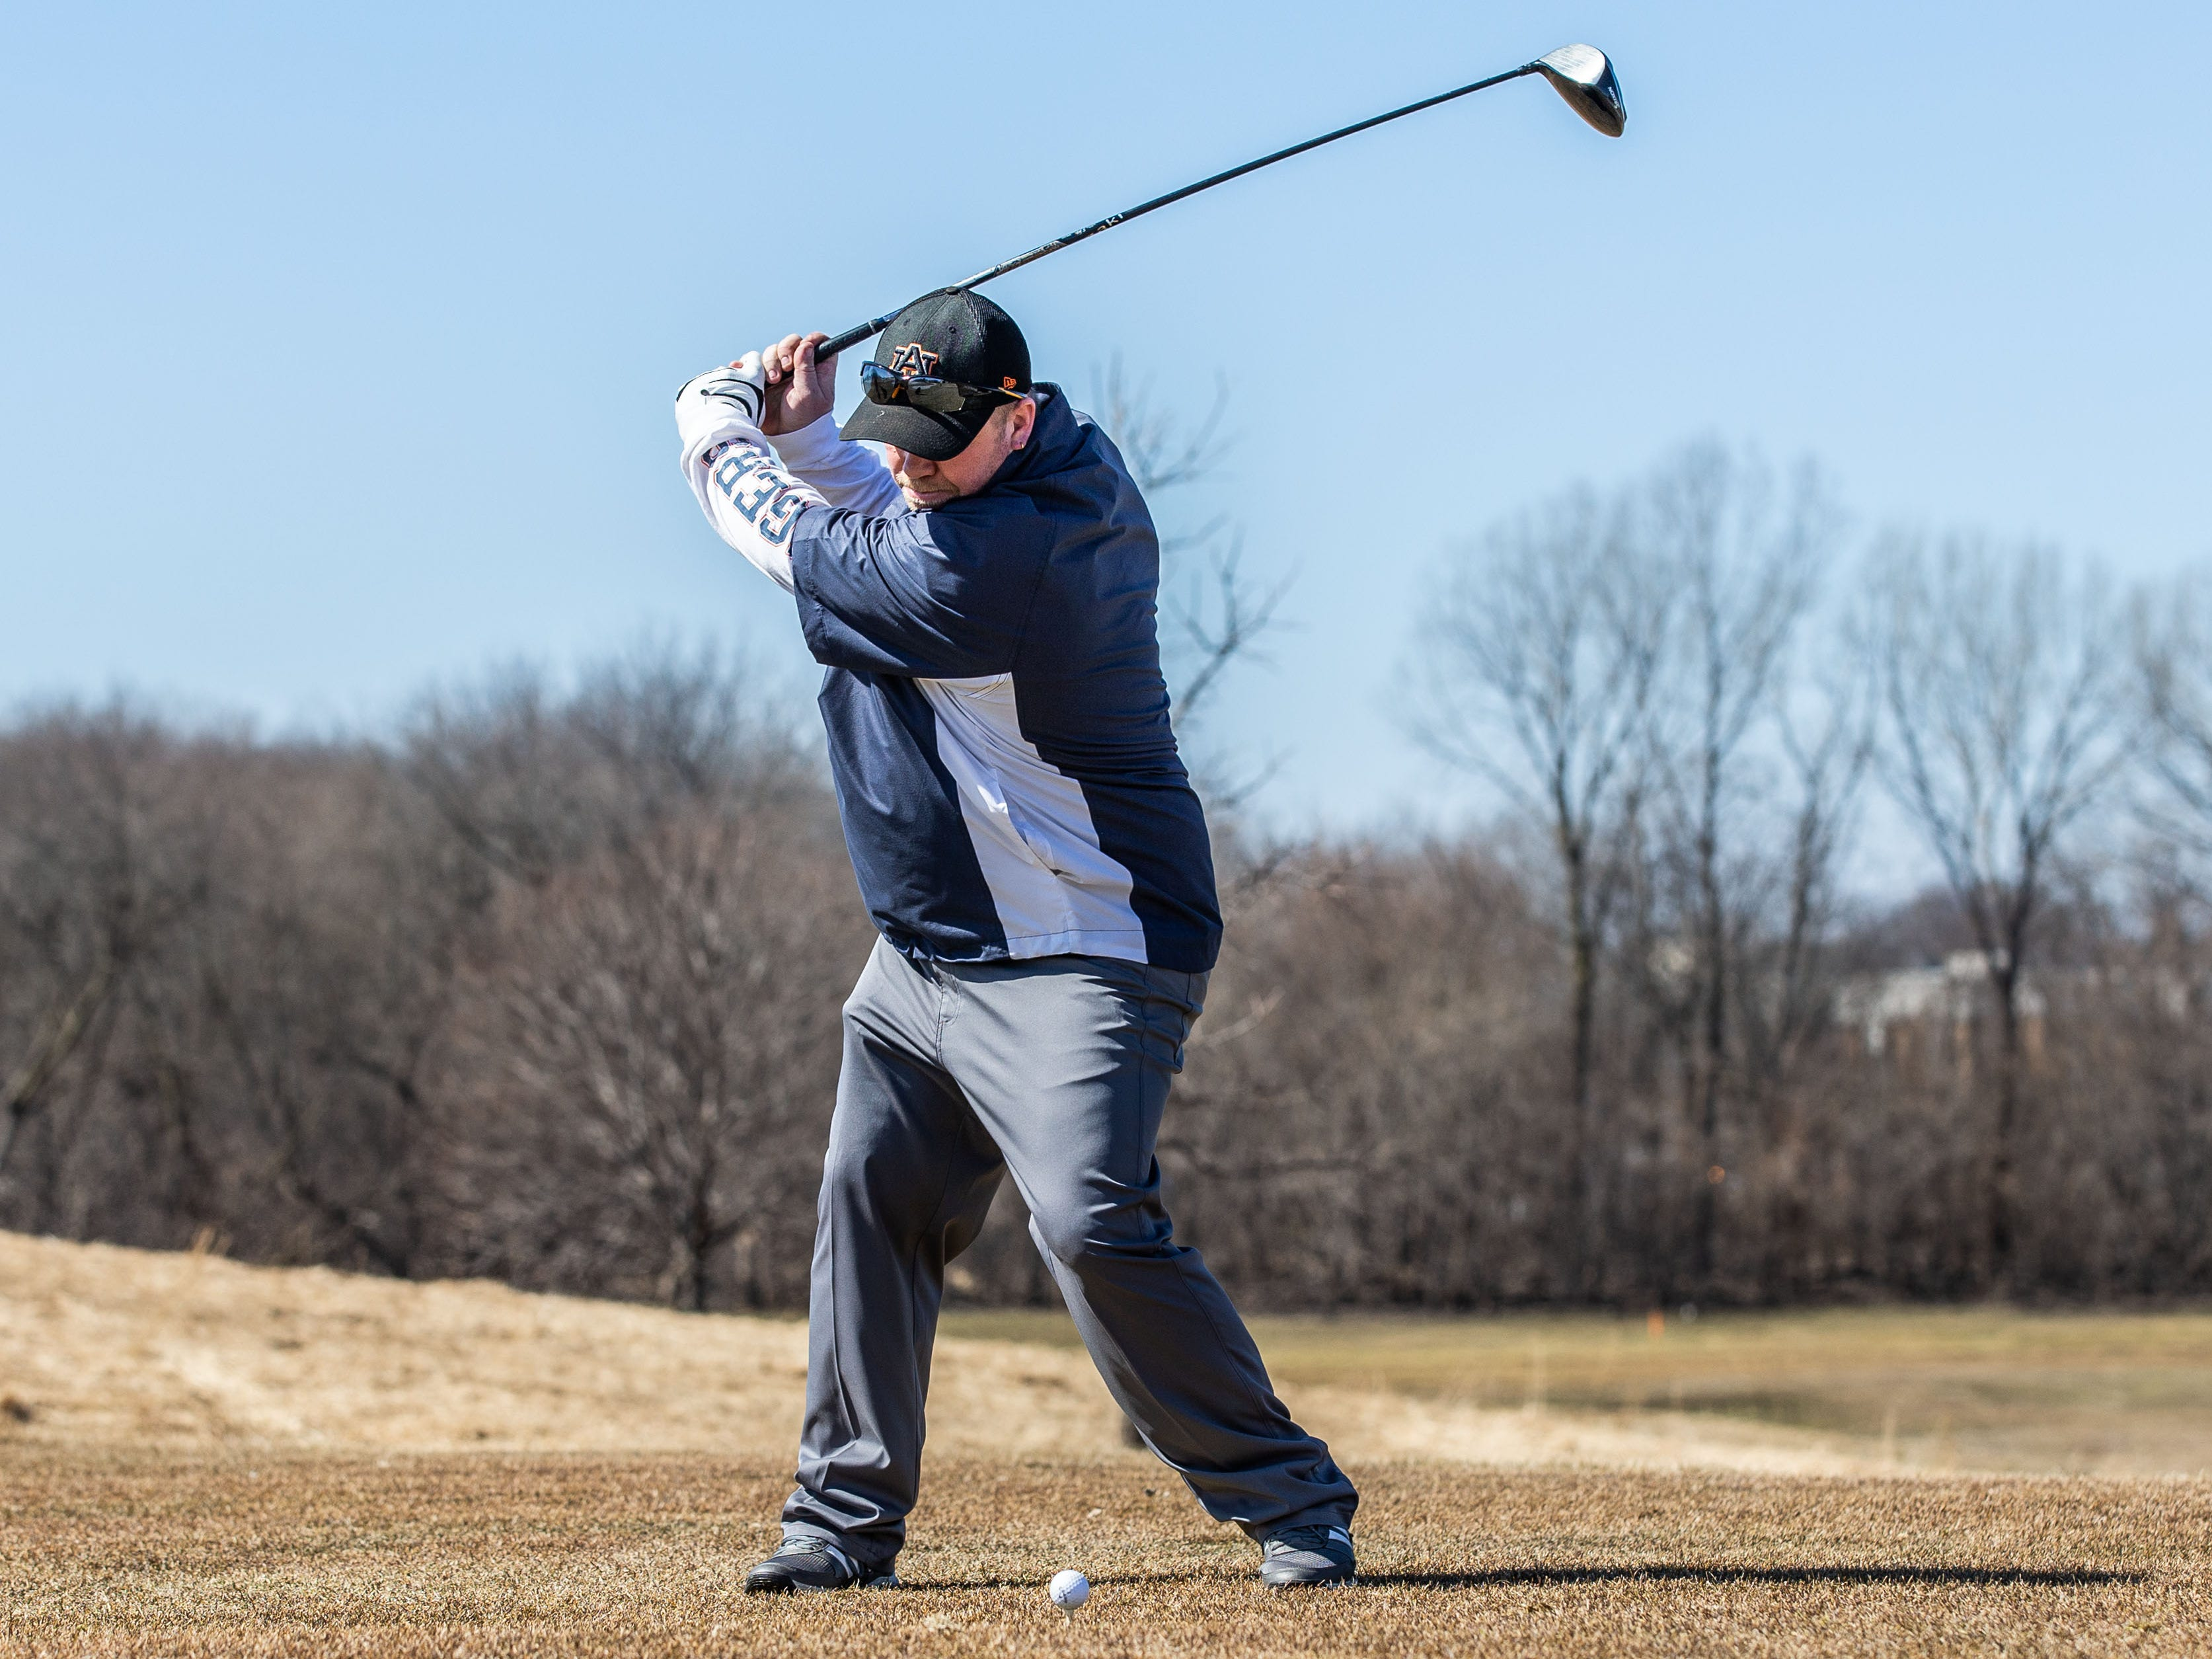 Mark Jeffers of Waukesha drives off a tee at Moor Downs Golf Course in Waukesha on Saturday, March 23, 2019. Warm sunny weather lured many enthusiasts outside to enjoy the game.